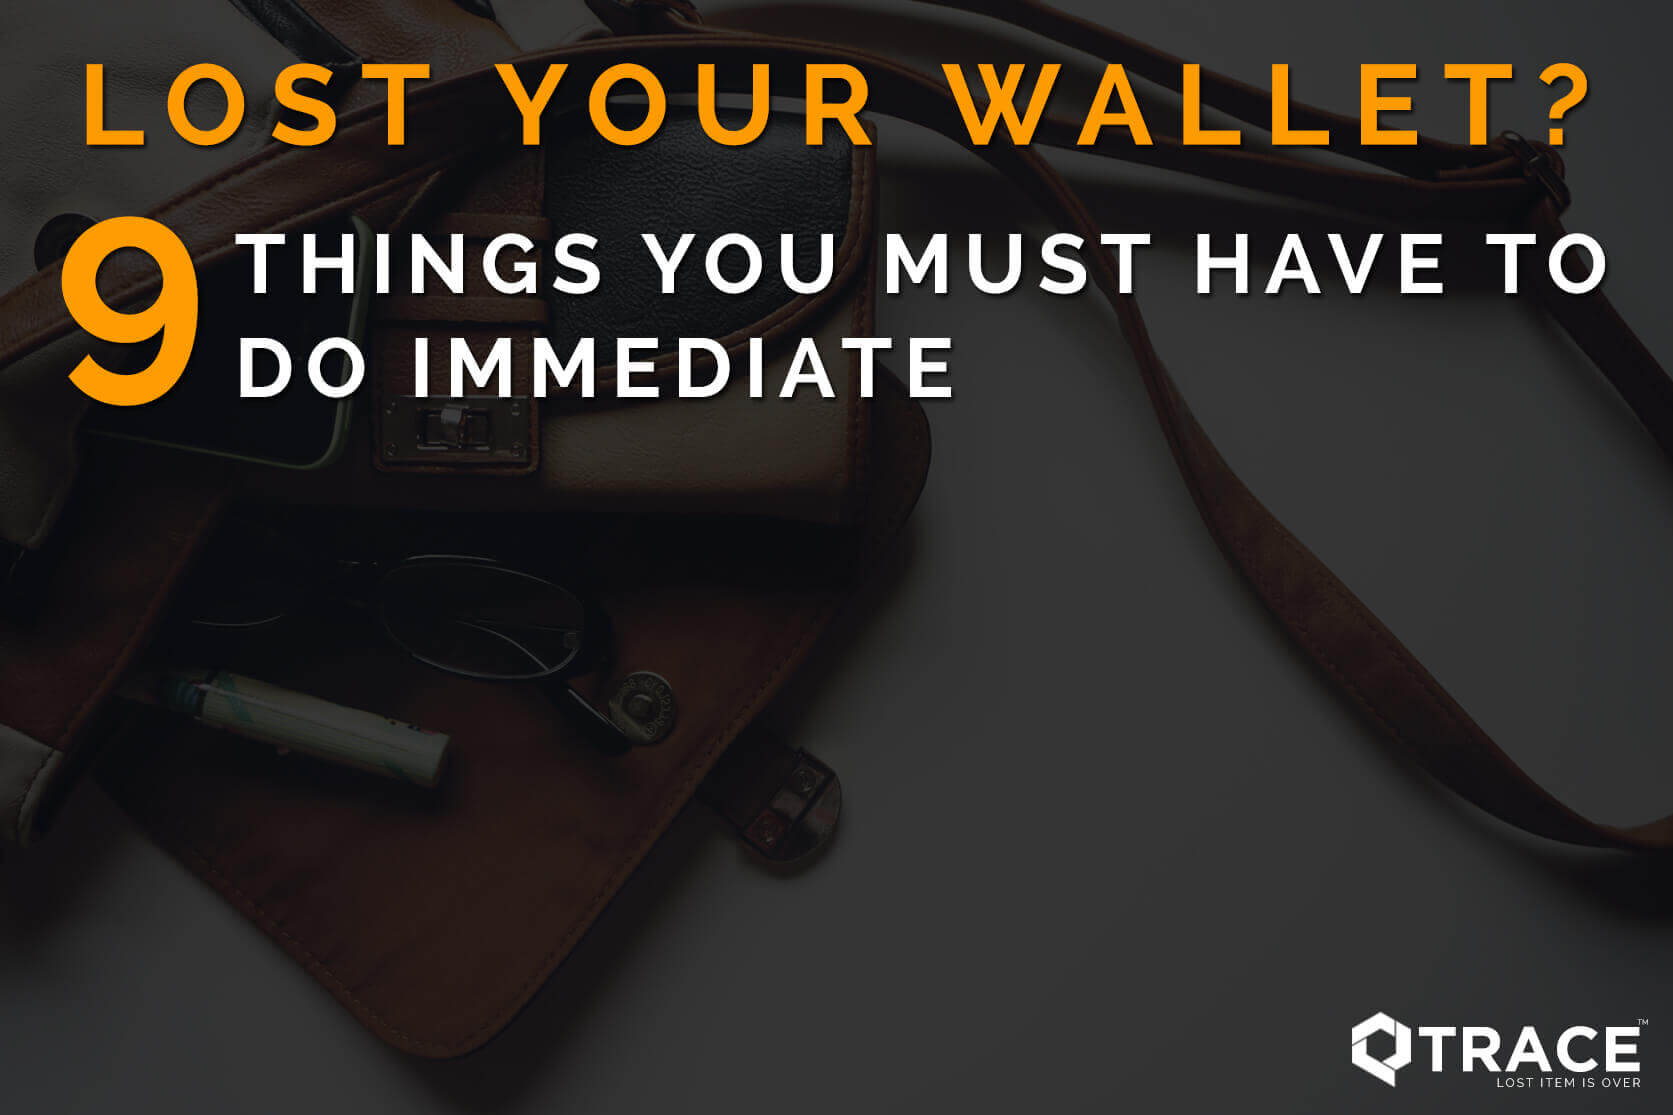 What Should I Do If My Wallet Is Stolen or Lost?